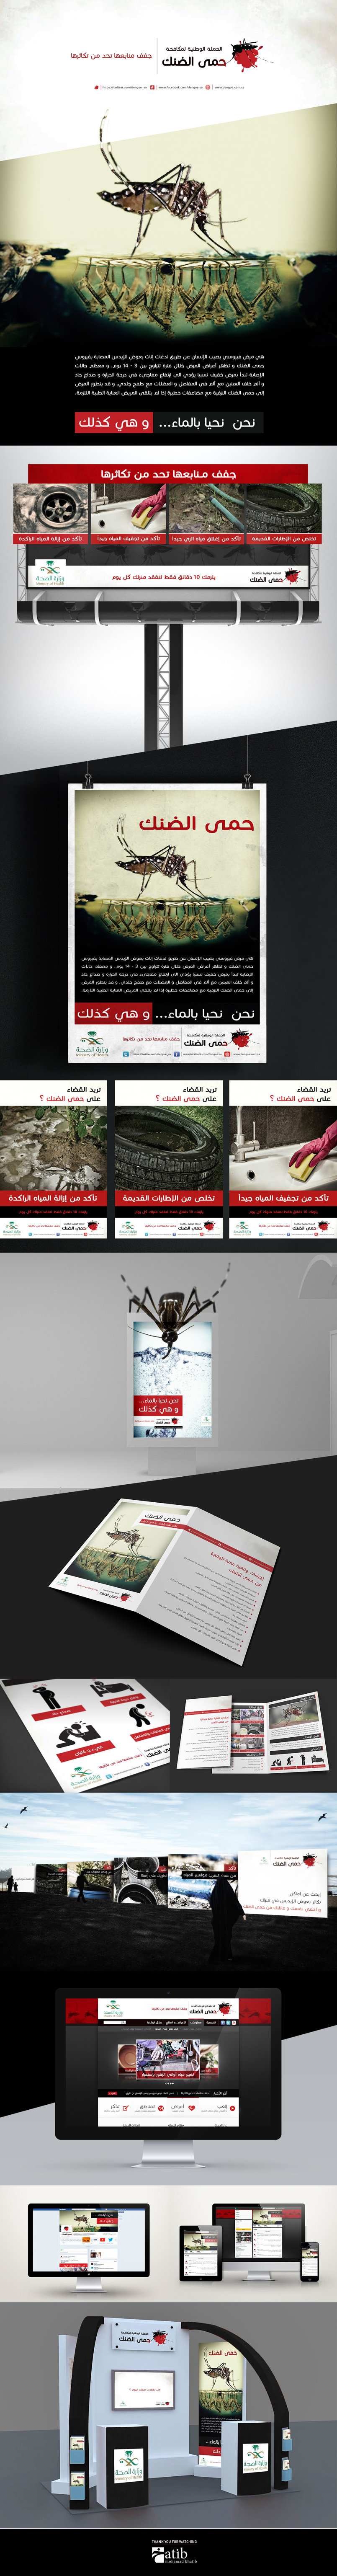 Dengue Fever - The national campaign against dengue fever